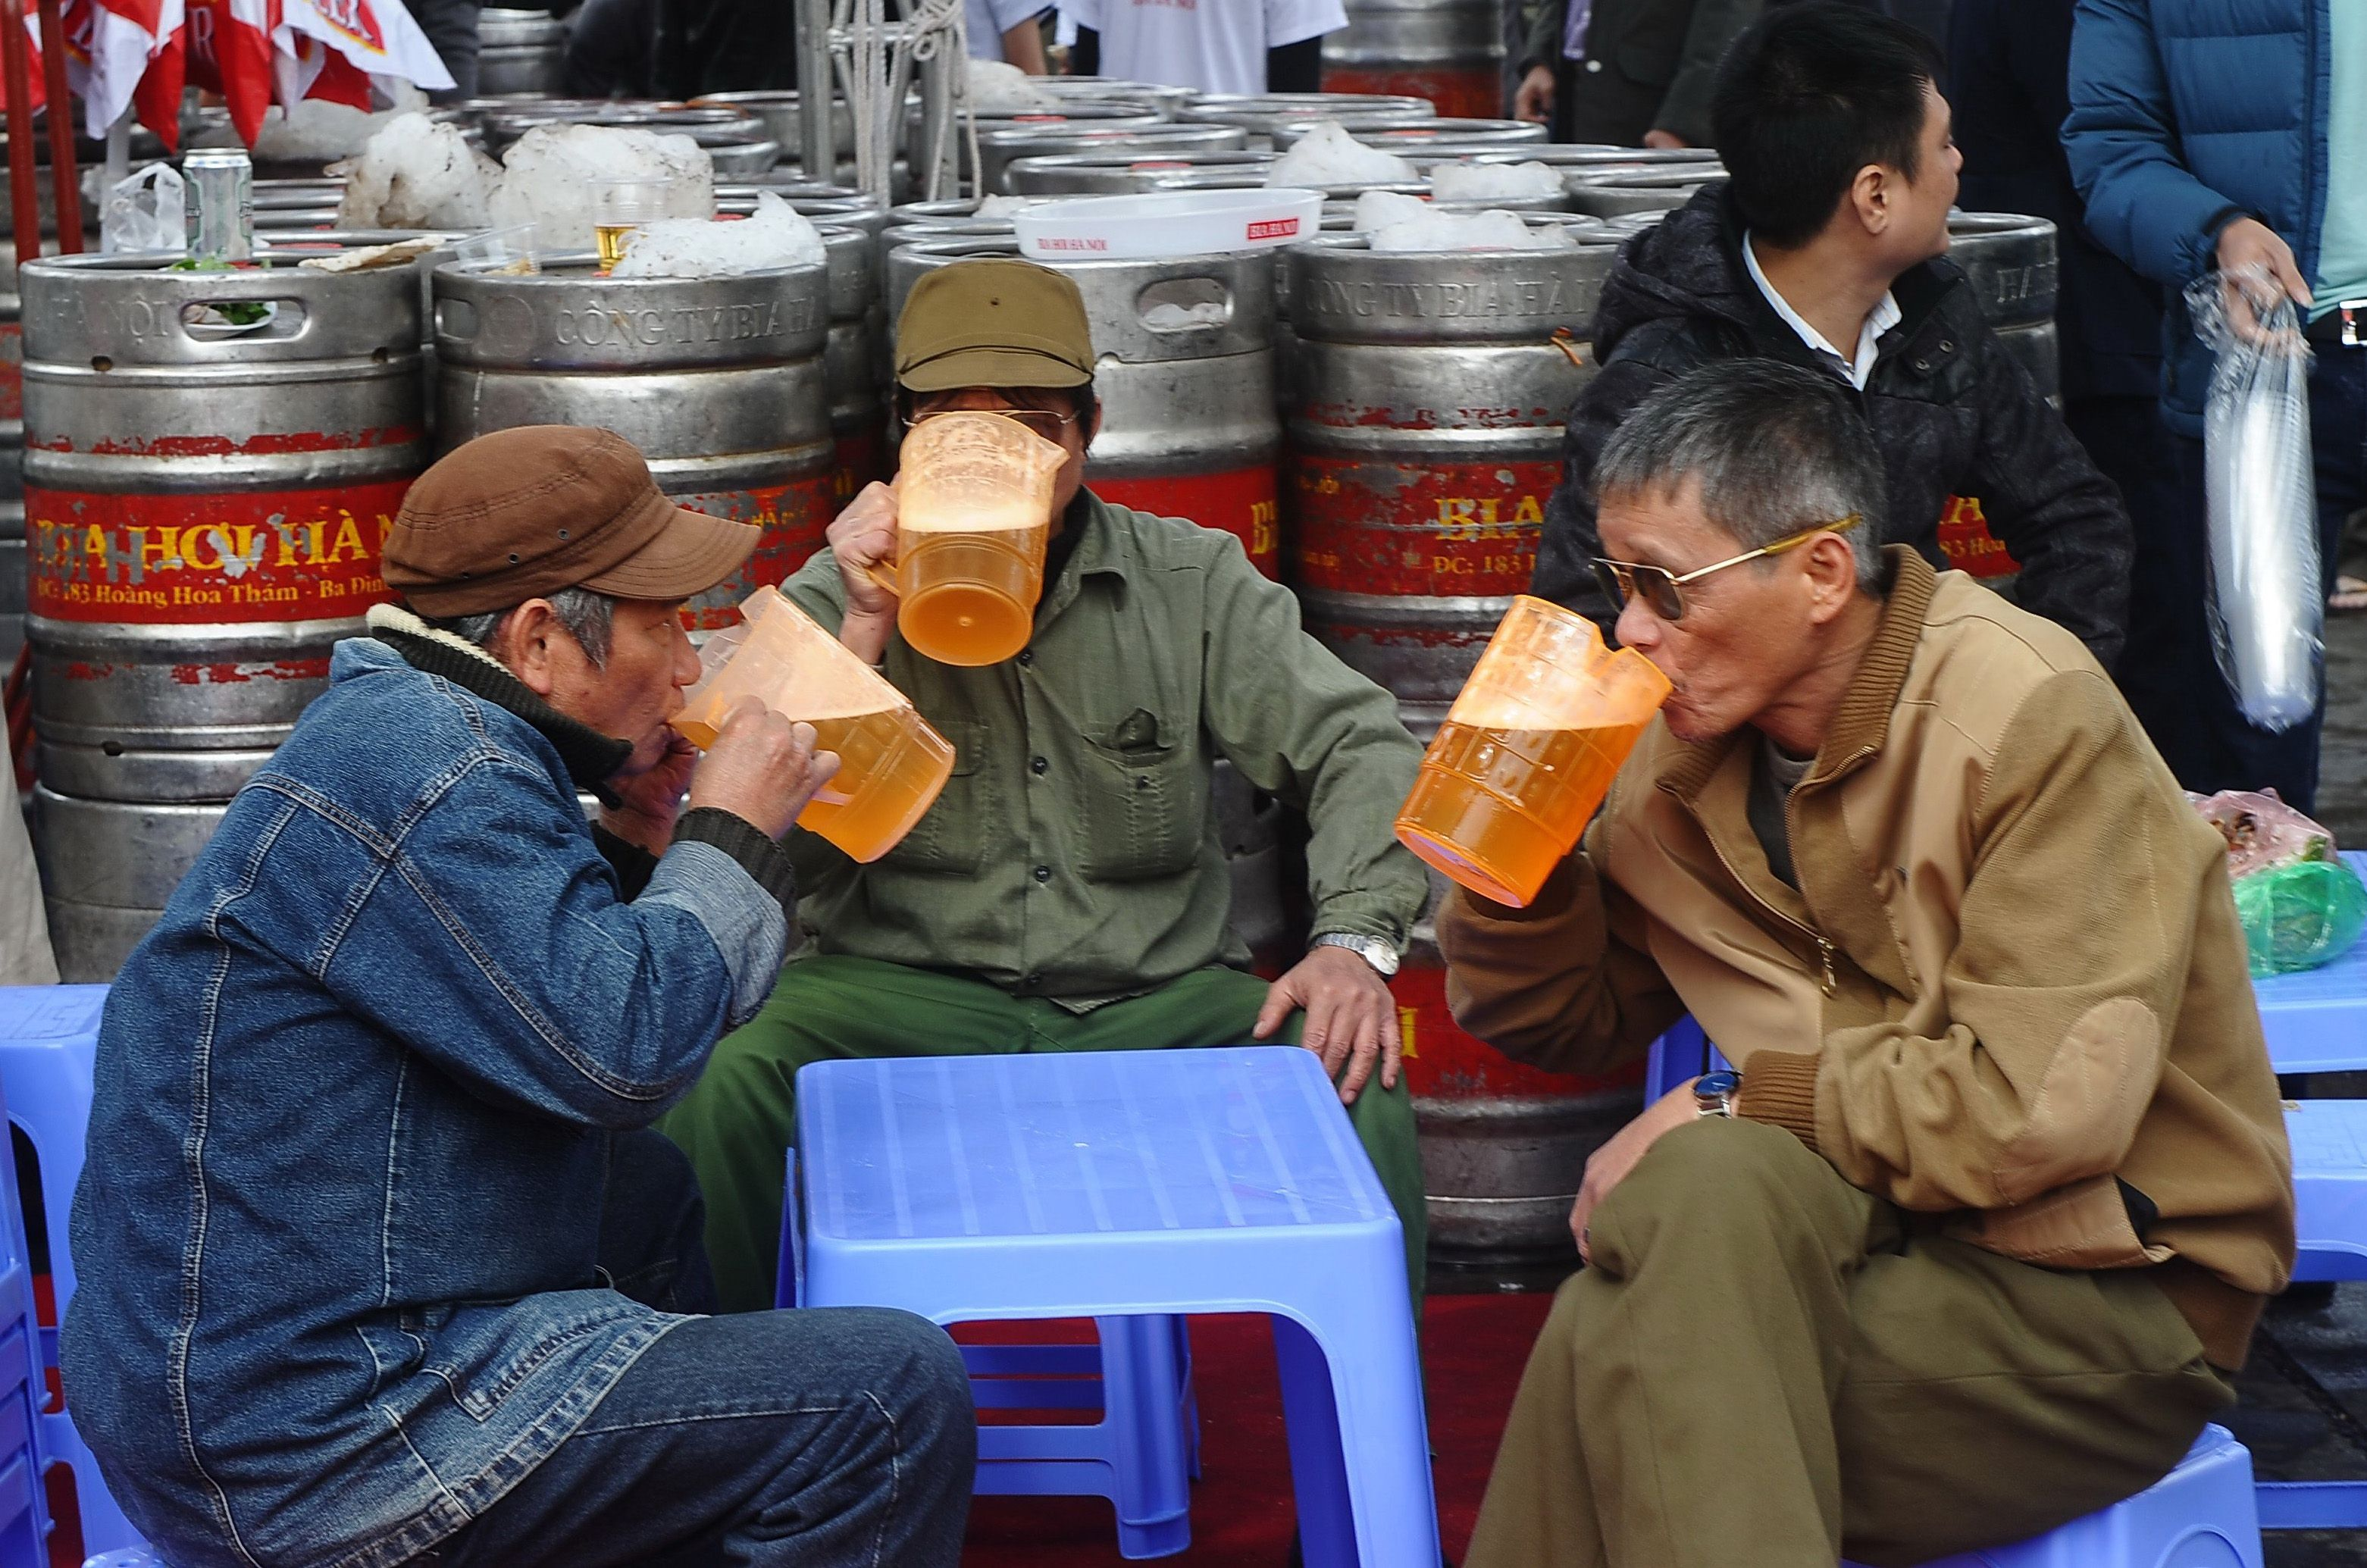 Vietnam should have complete booze ban instead of proposing a curfew